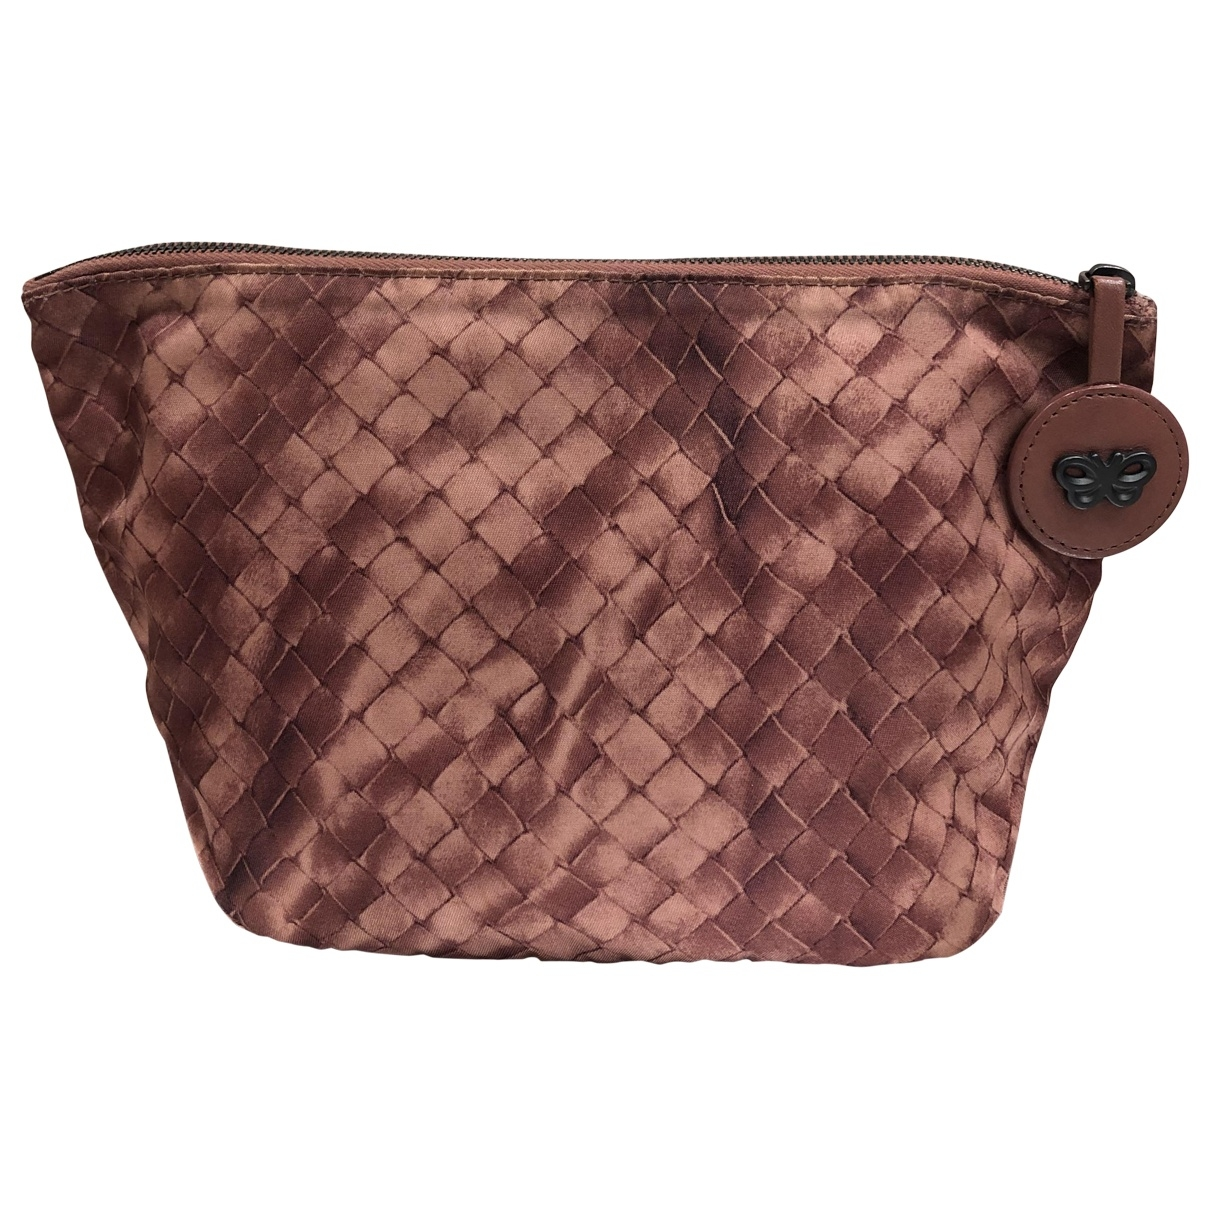 Bottega Veneta \N Clutch in  Bordeauxrot Leinen